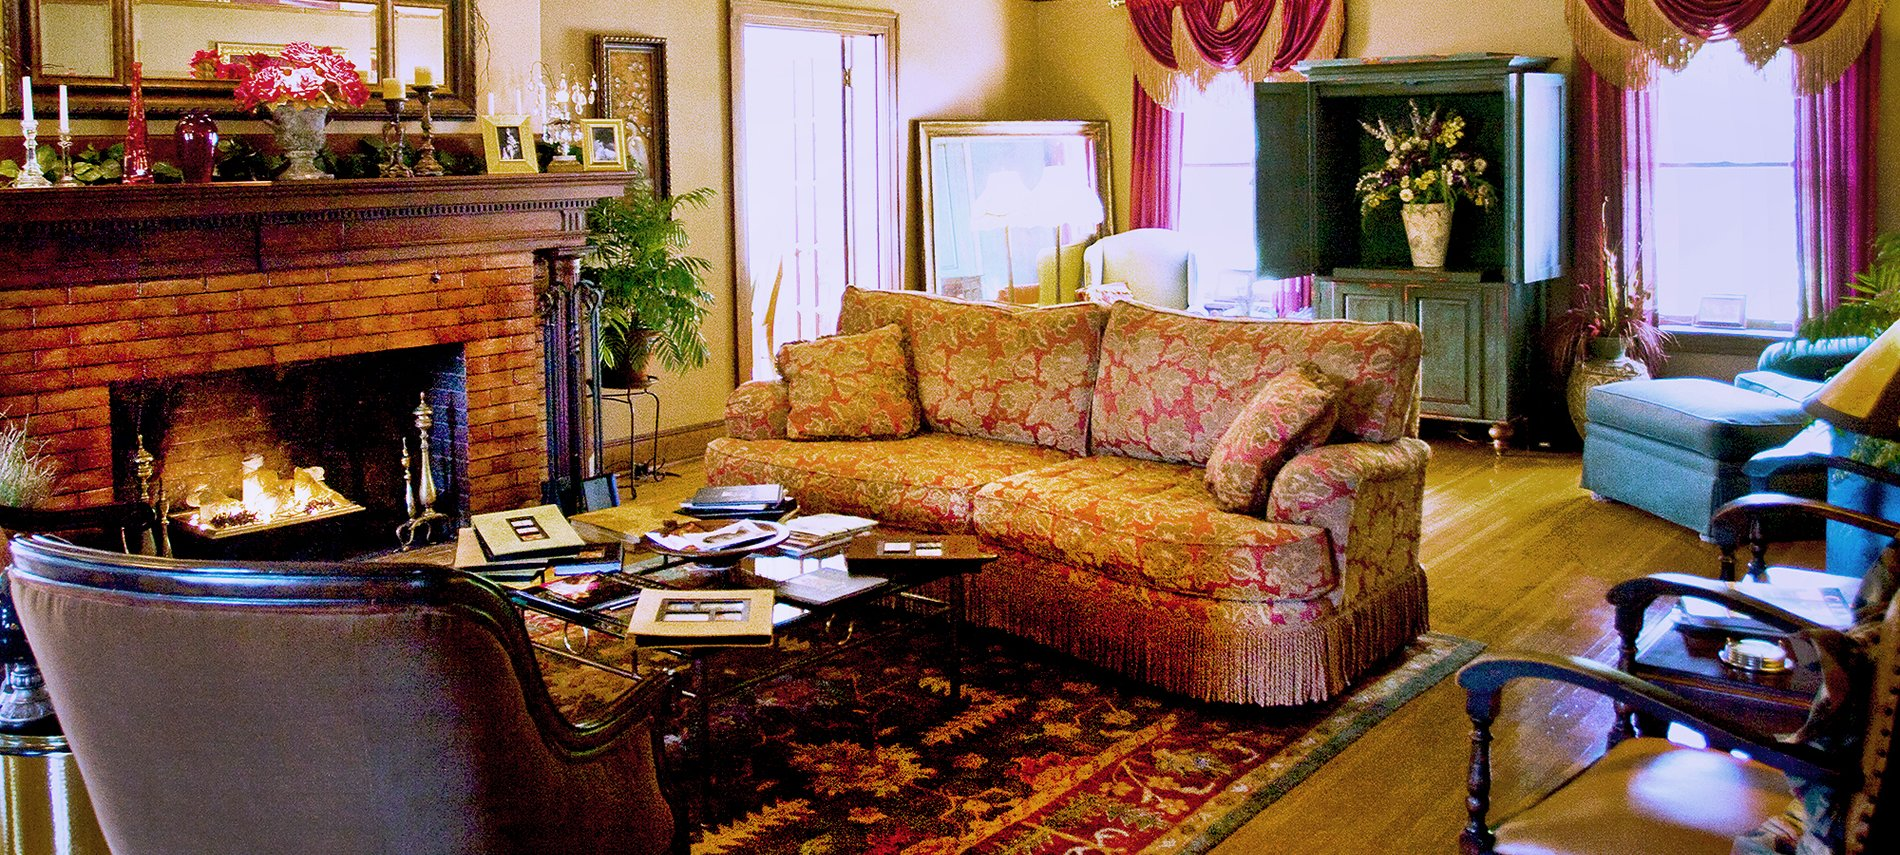 A living room with an overstuffed burnt orange sofa to the right and a brown brick fireplace to the left